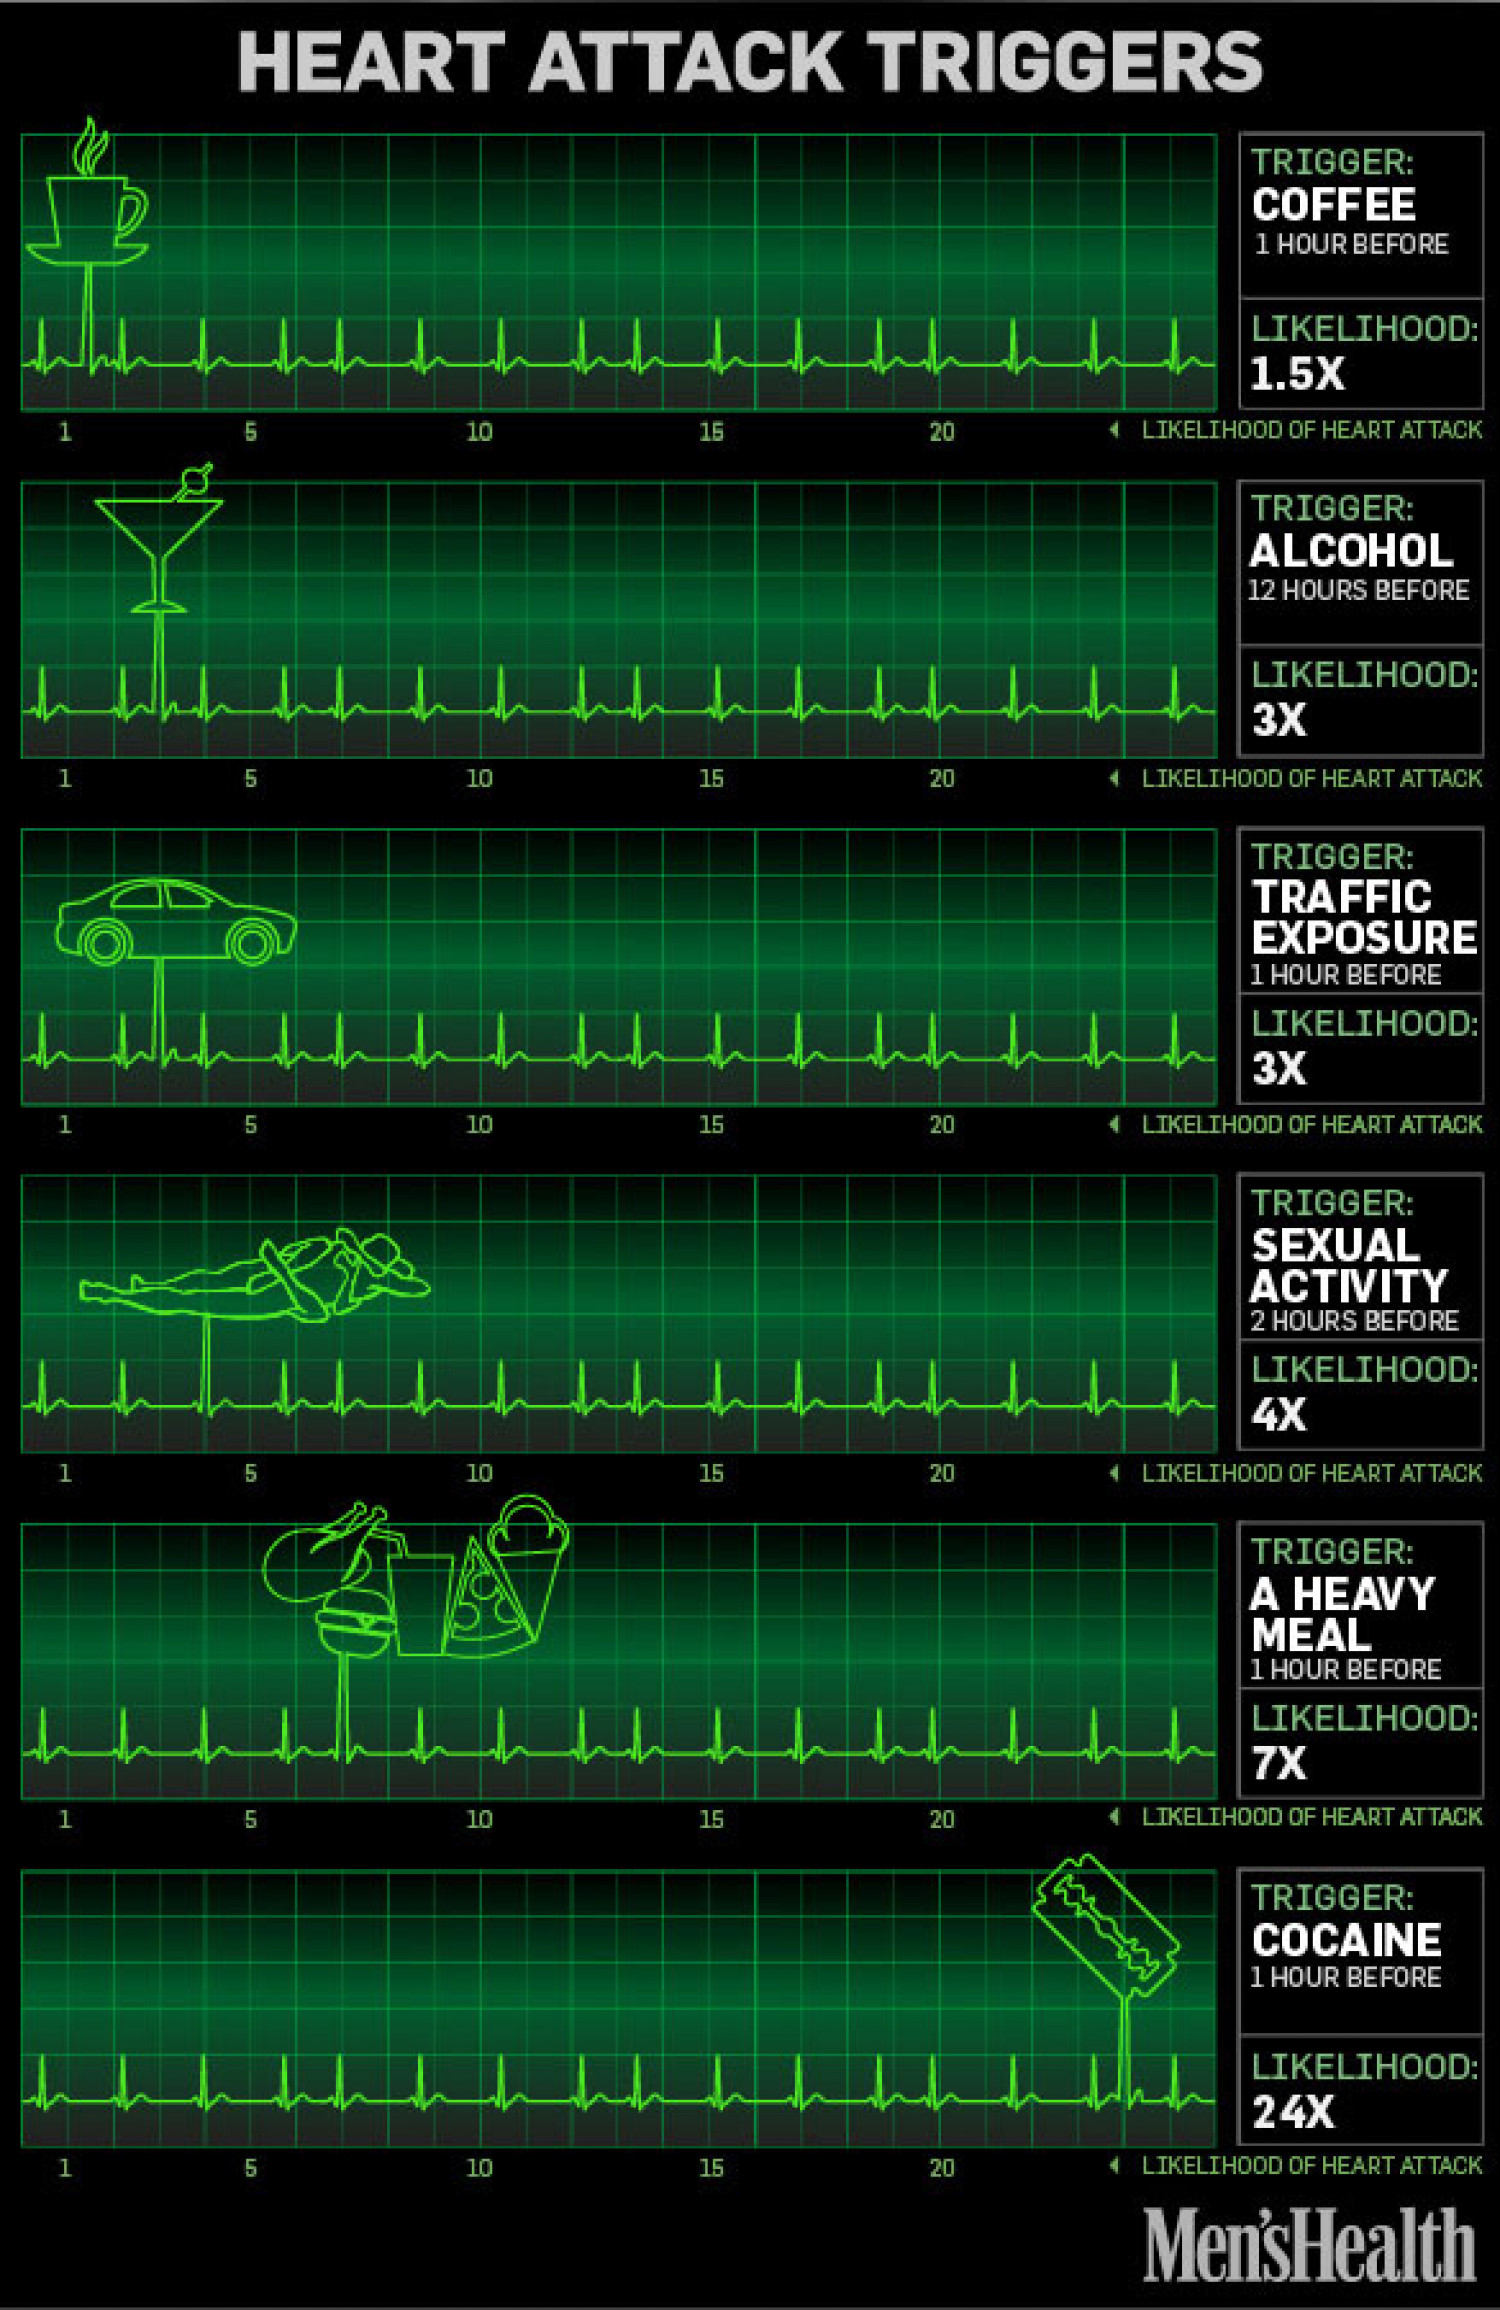 Heart Attack Triggers Infographic